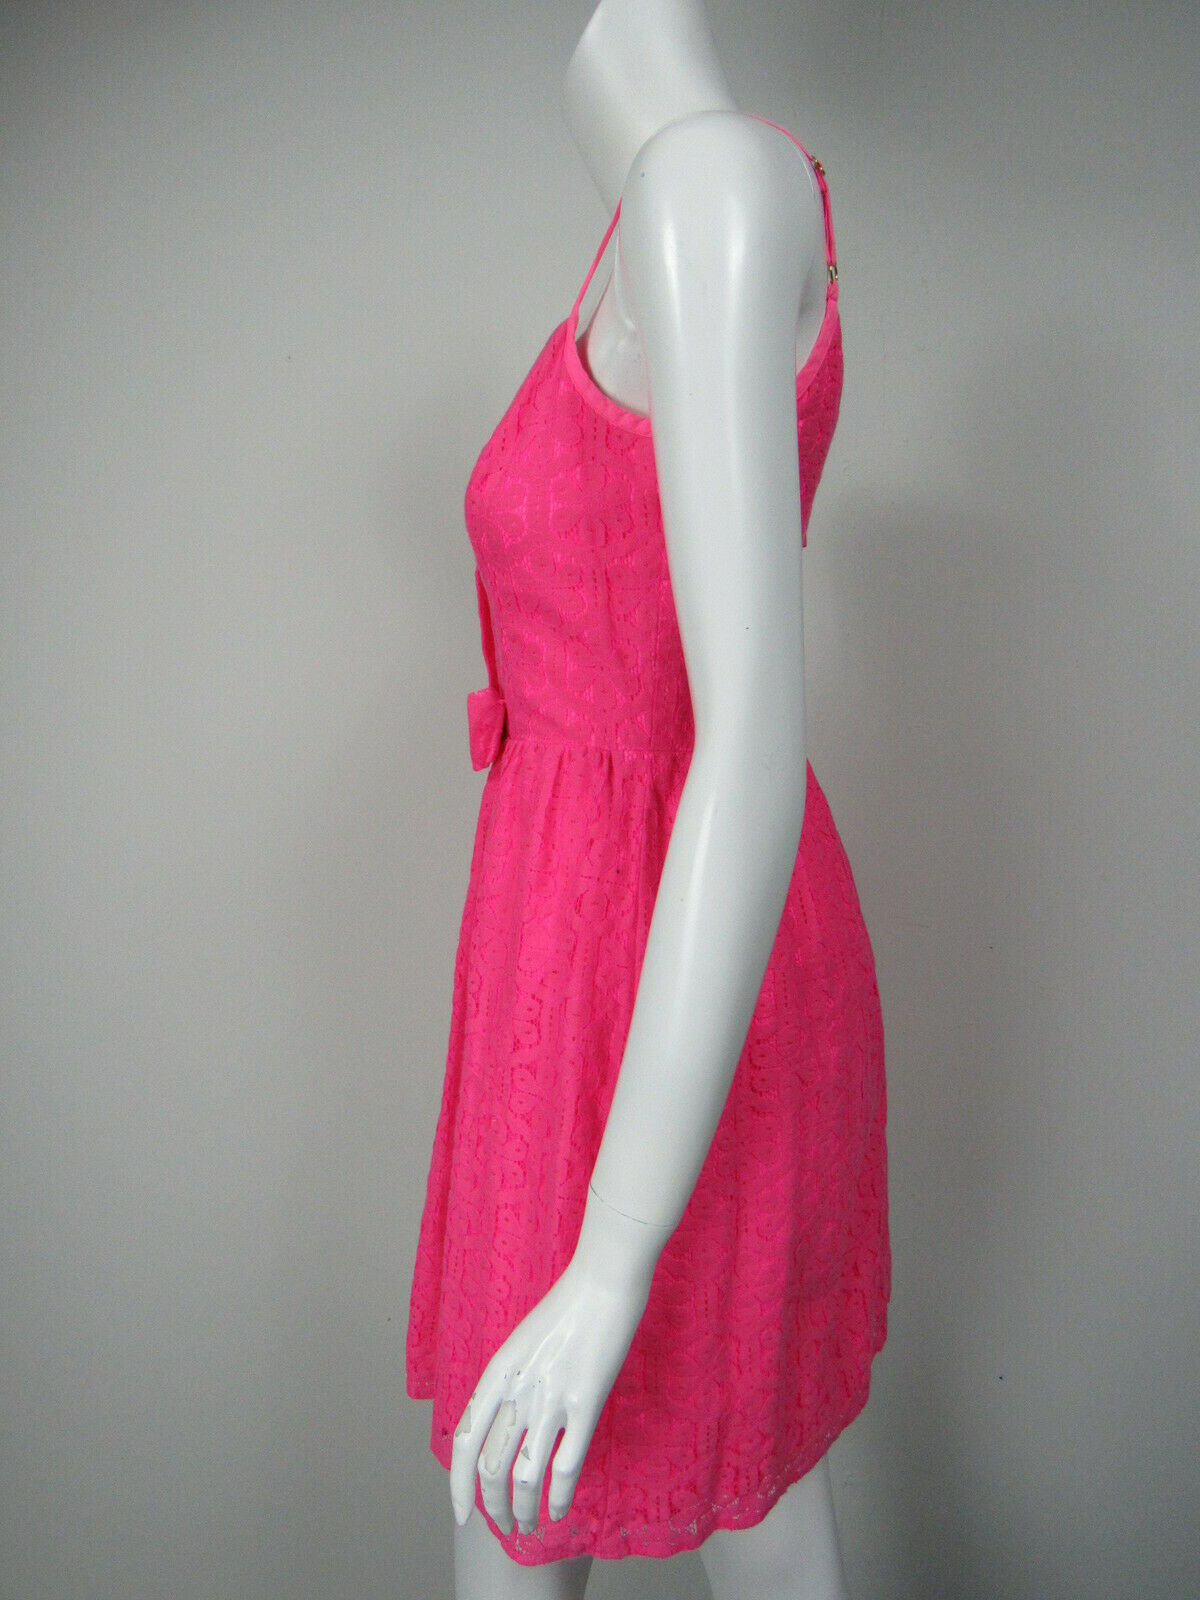 LILLY PULITZER Antonia Hot Pink Daisy Lane Lace A-Line A-Line A-Line Mini Dress sz 2 cd19f2